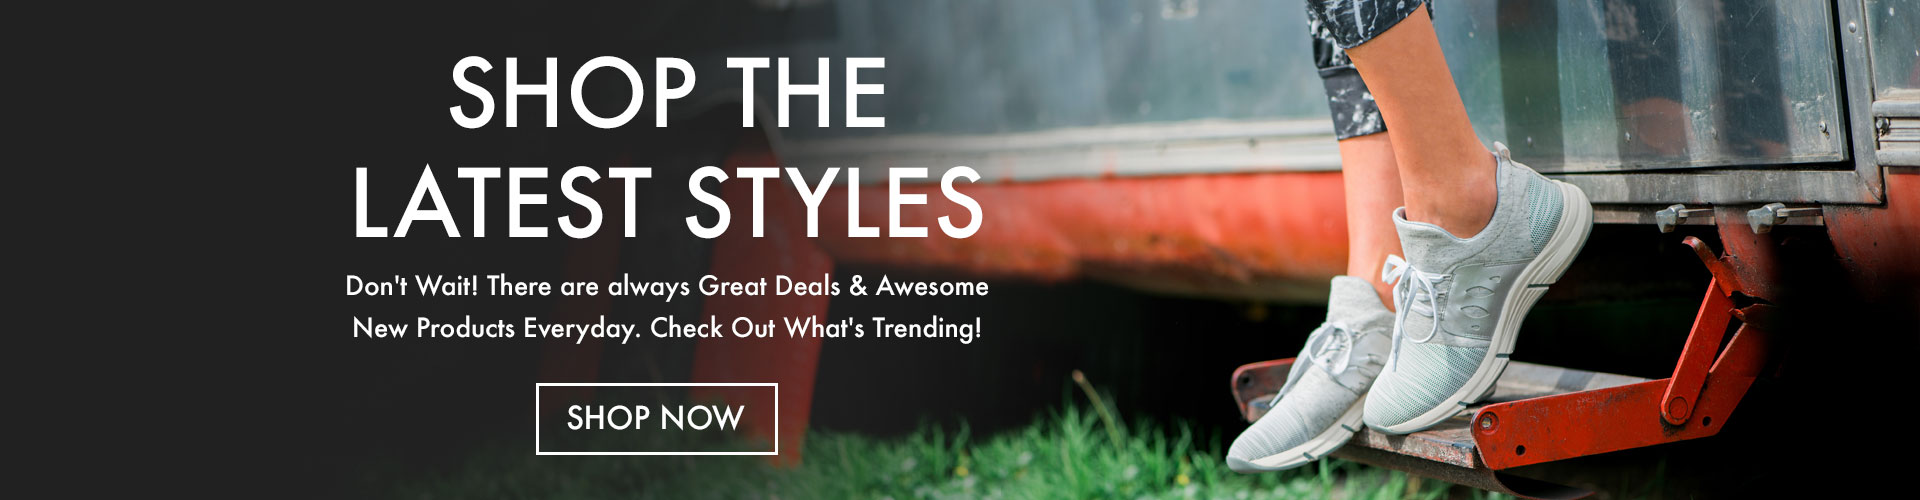 Be the first to show off amazing styles for spring!